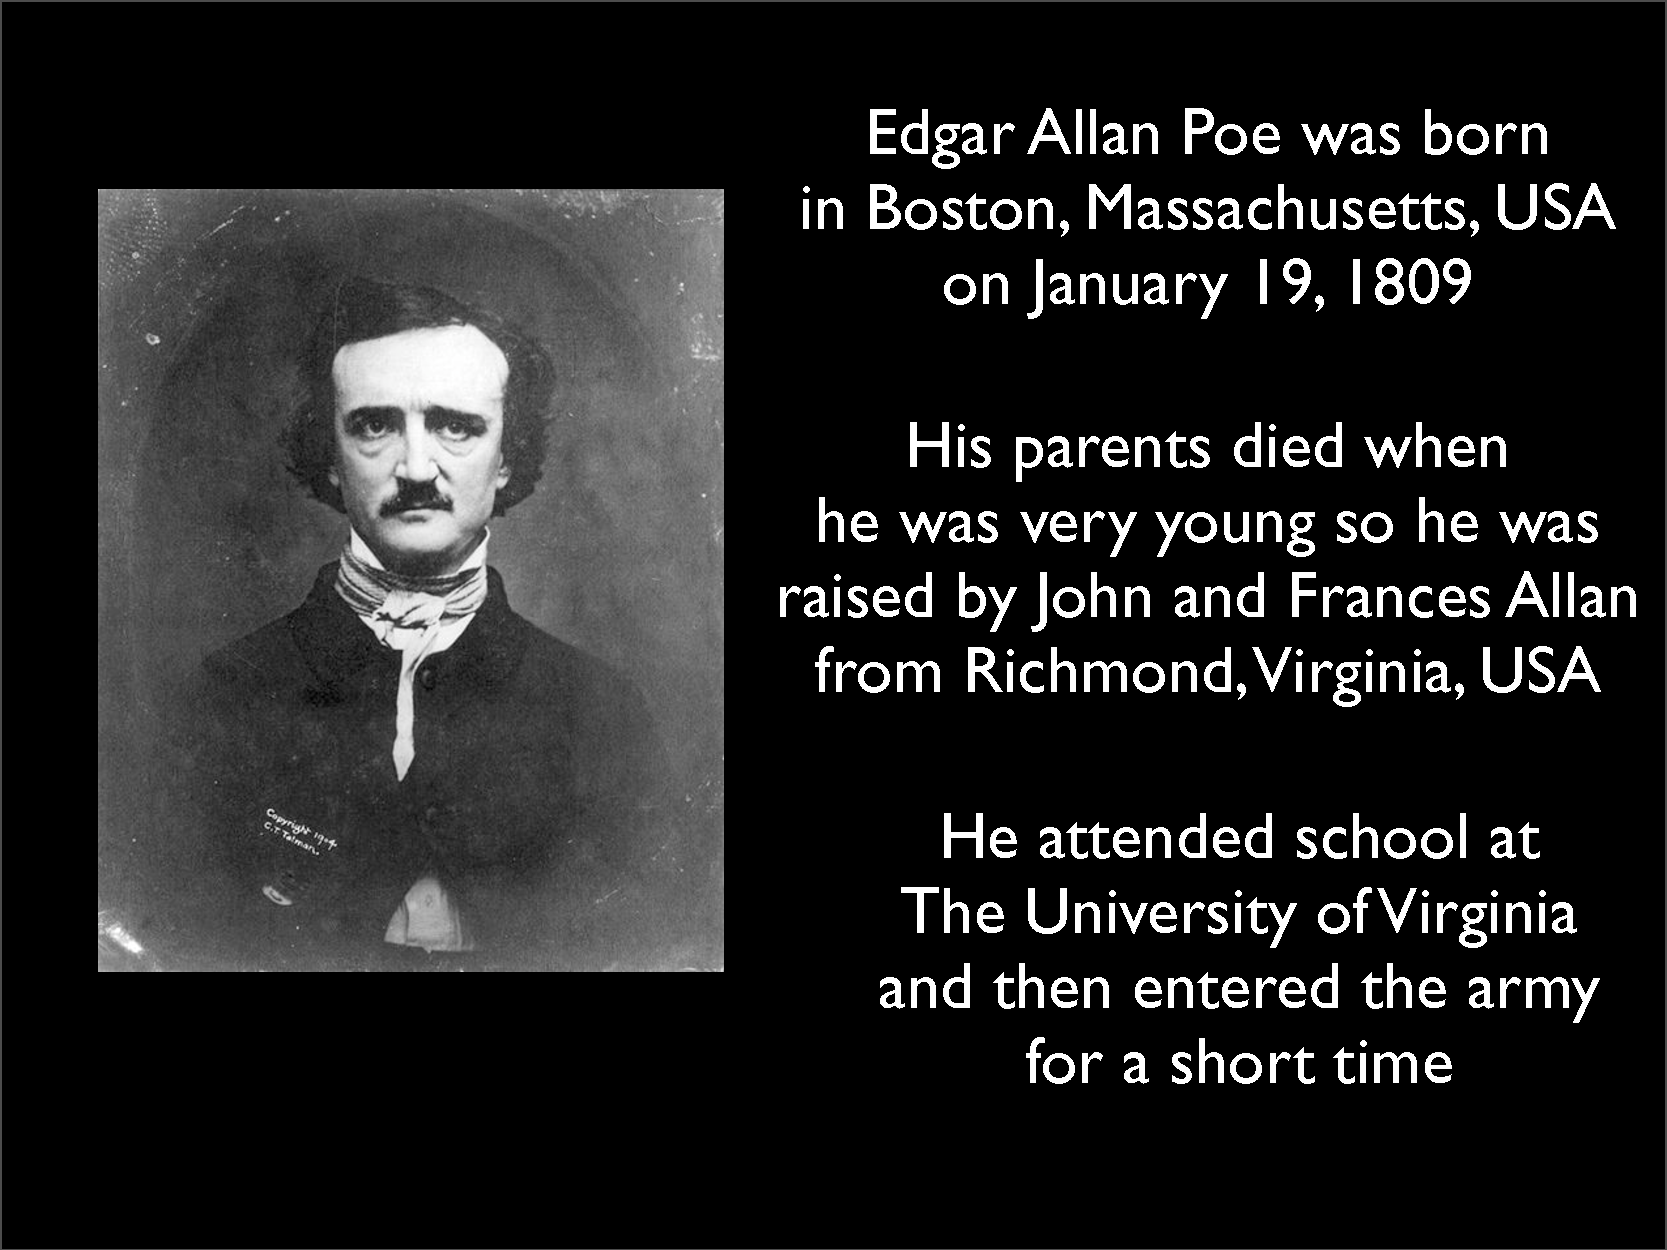 biography of edgar allen poe essay Check out a free essay example about edgar allan poe's life from a writer biography and the writer's path of alan poe edgar poe was one of the three.